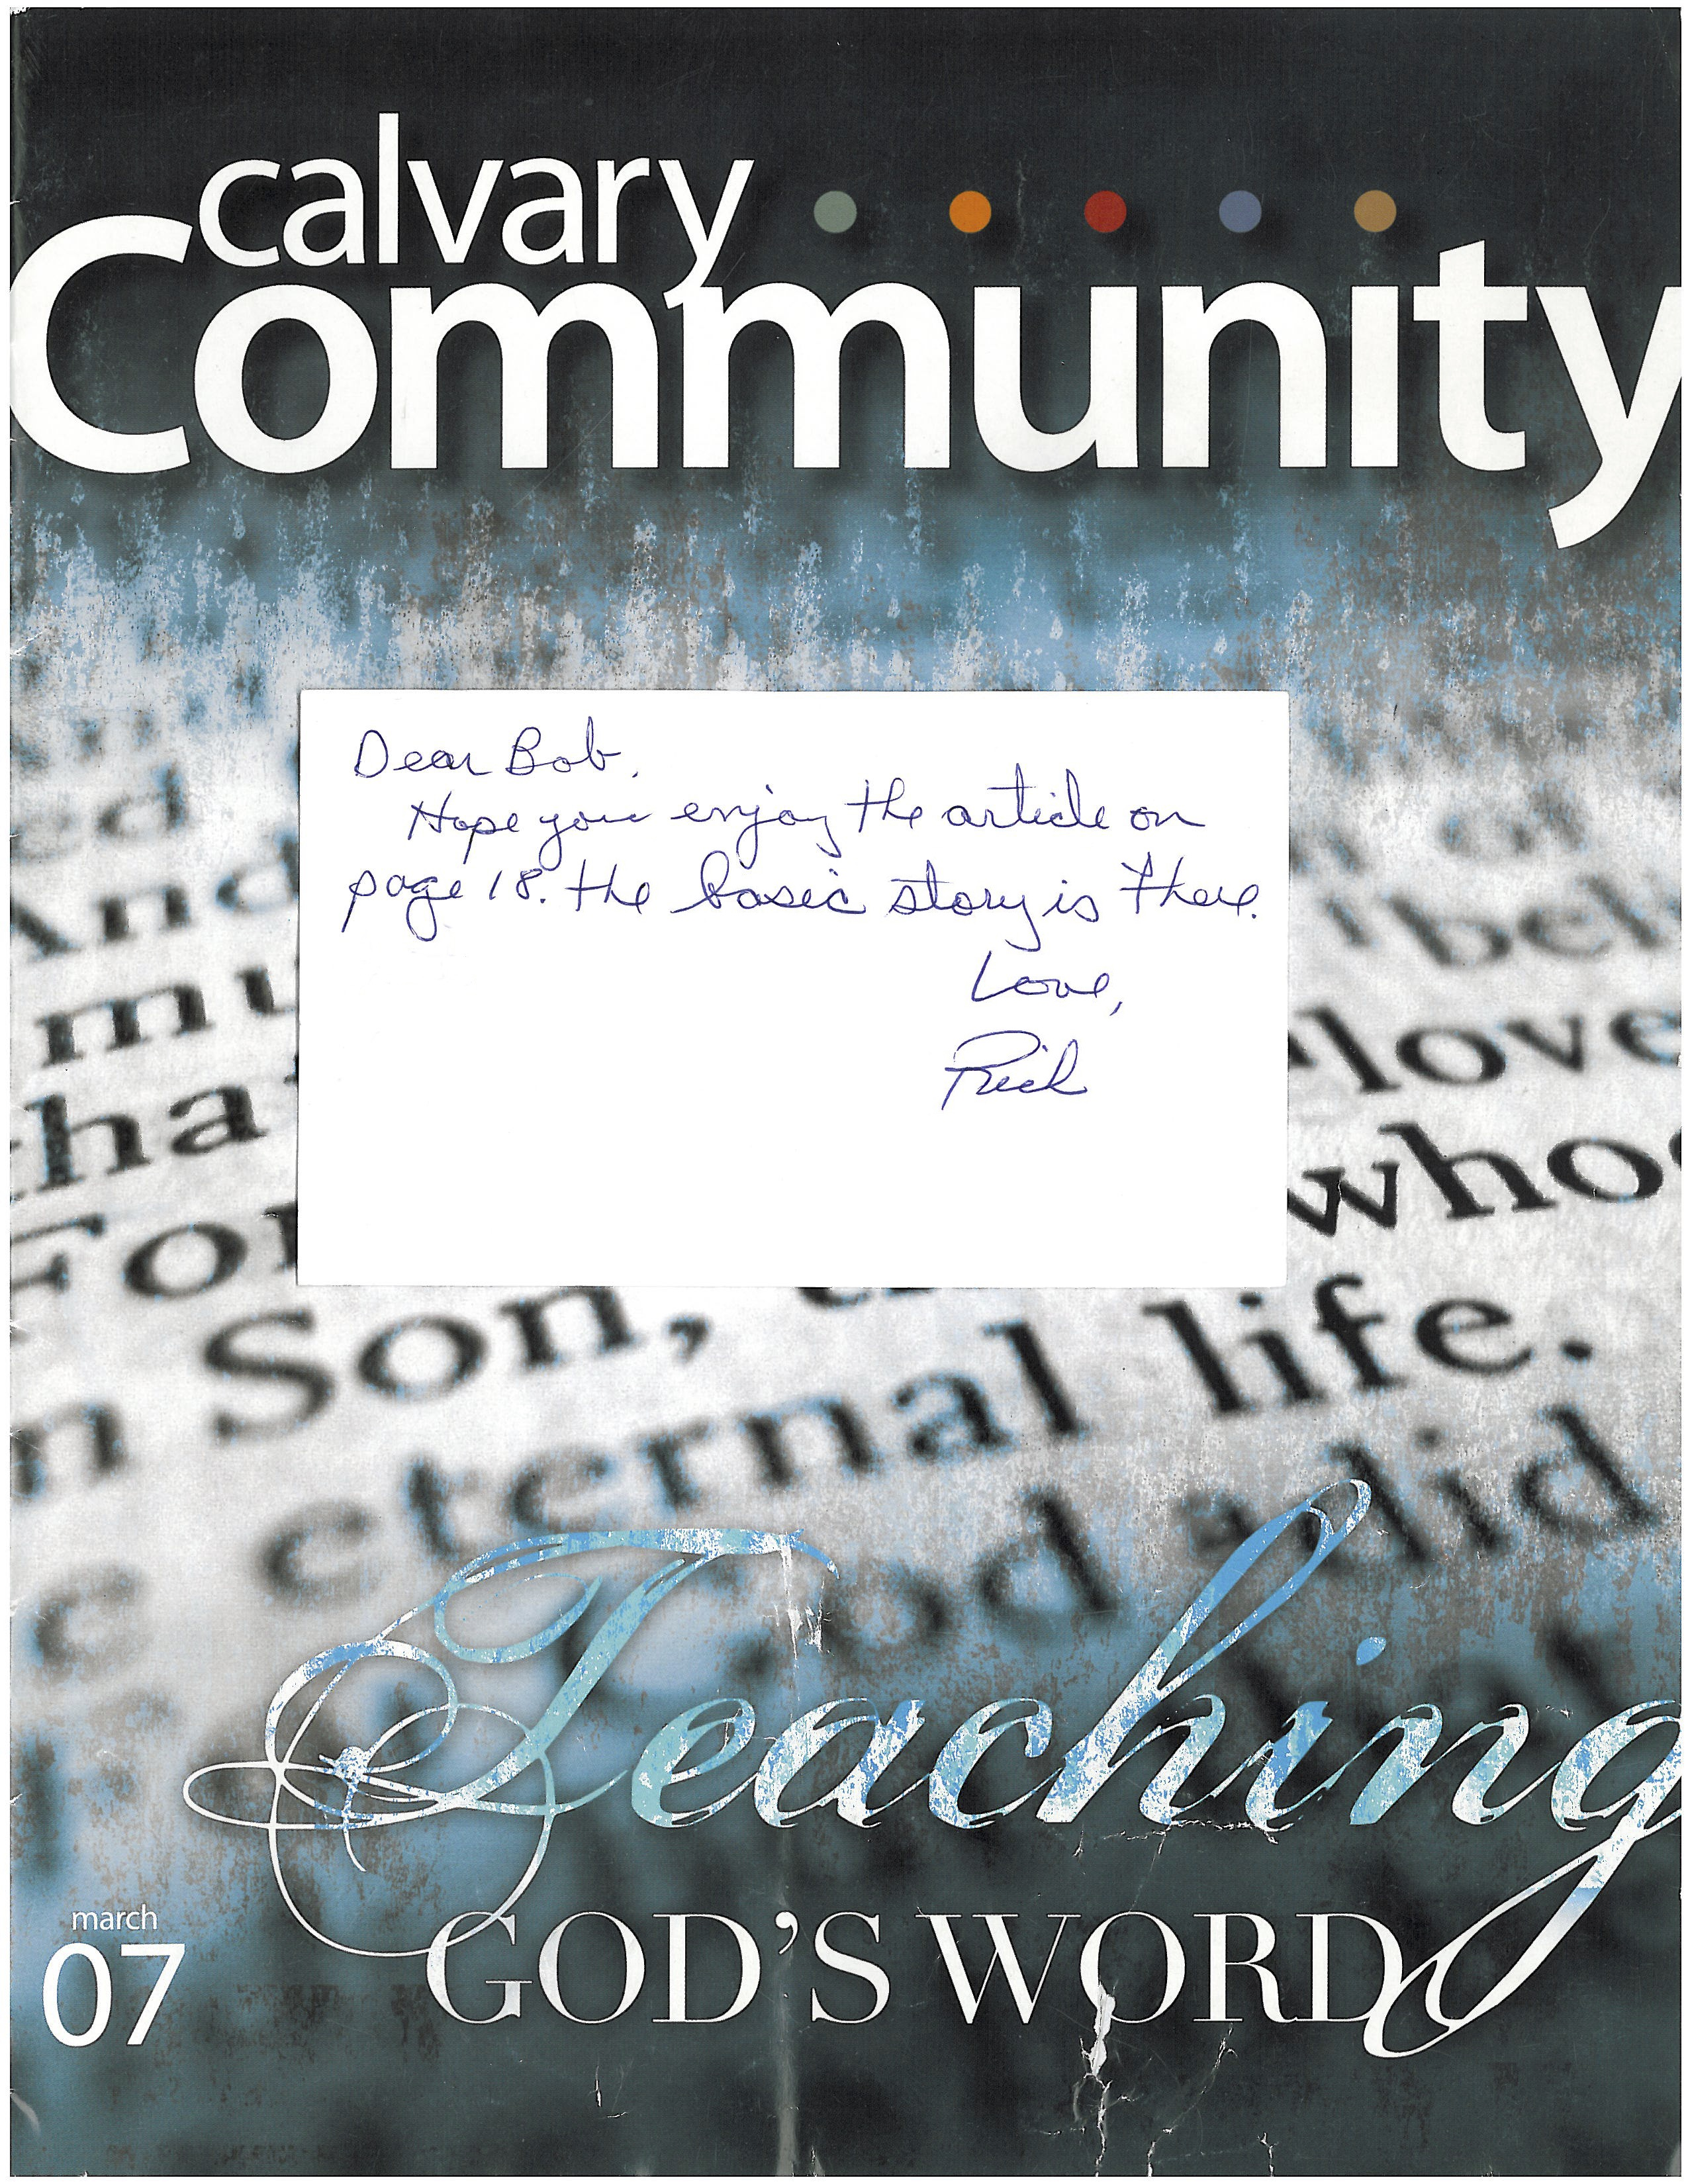 Ft. Lauderdale Florida Calvary Chapel Magazine cover with note to Bob from Rich Scordato